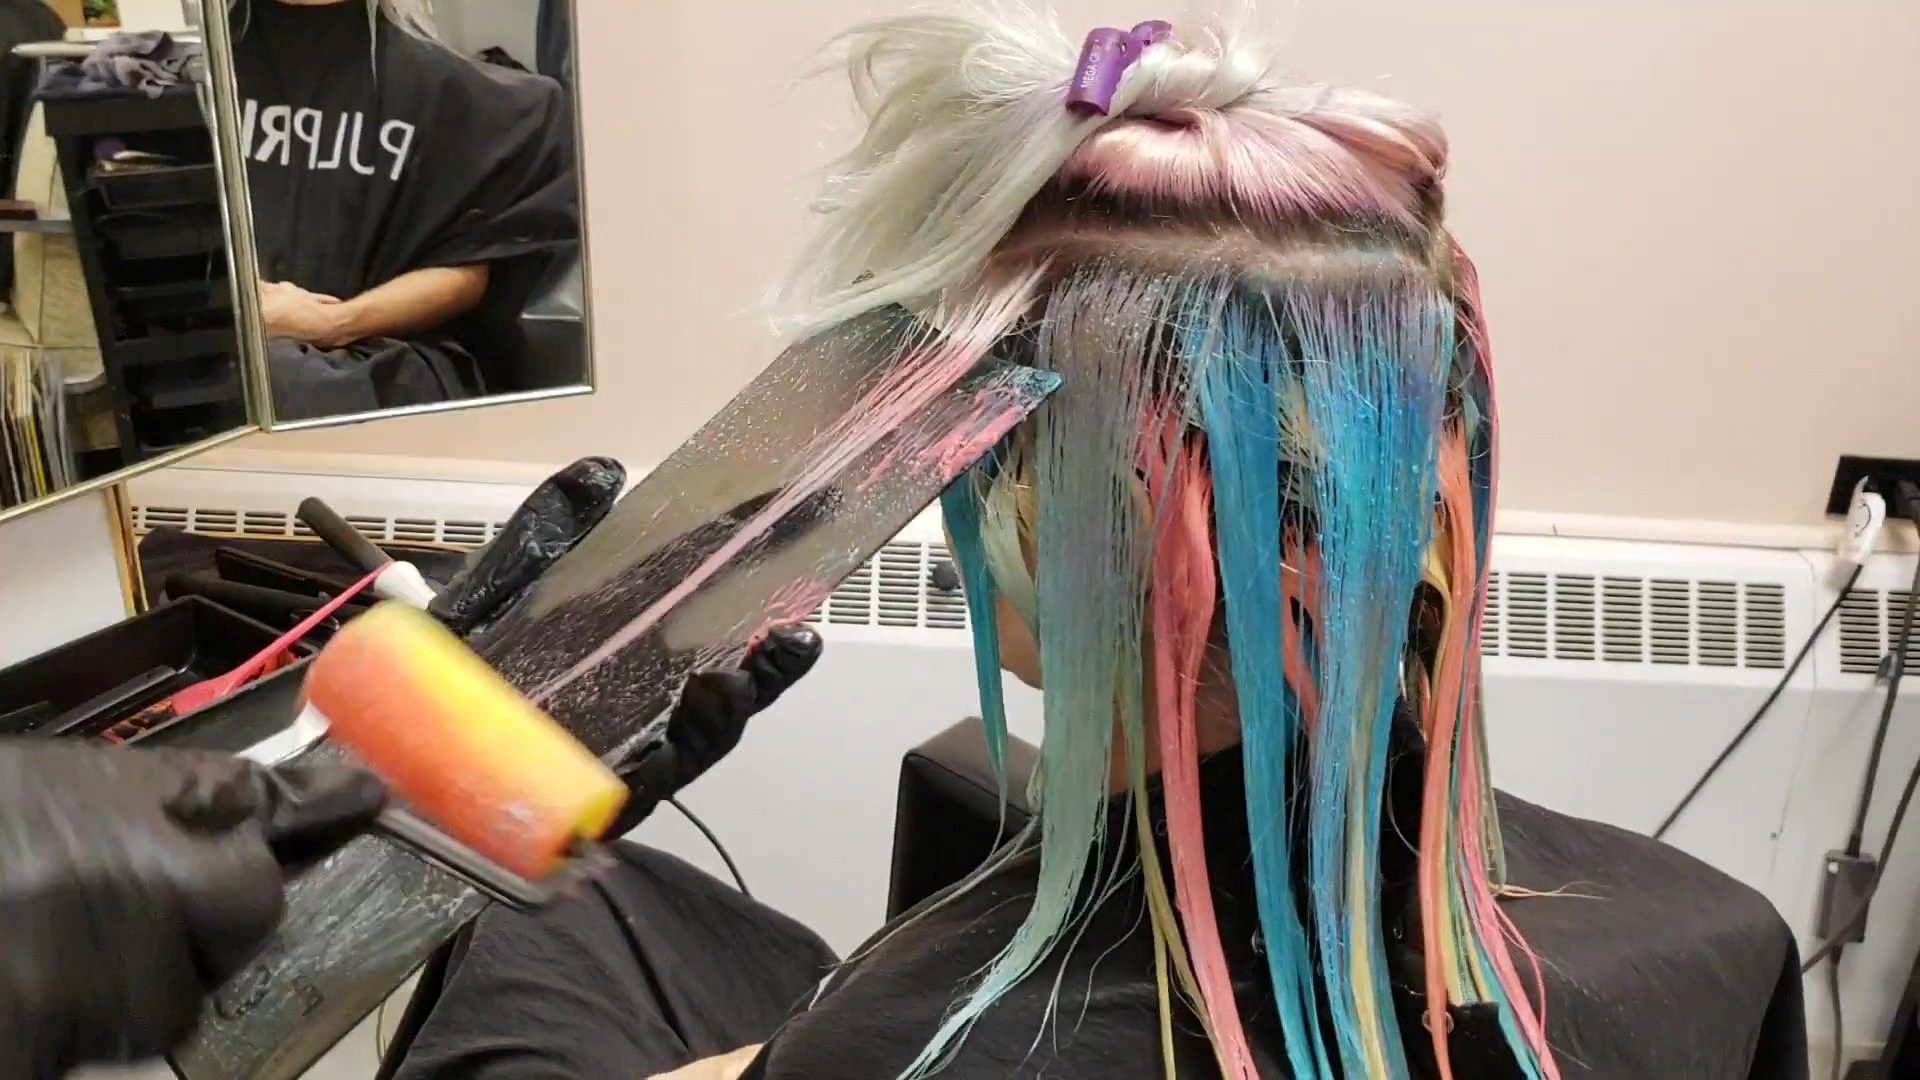 "Mesmerising footage shows a hairdresser giving a client rainbow hair using a PAINT ROLLER. See SWNS story SWNYcolor; A hairdresser who gives a client rainbow hair using a PAINT ROLLER. Kelly O'Leary, 37, created the colorful look by dipping rollers normally used for decorating into different dyes. The stylist, who runs the Sapphire Hair Lounge in Winnipeg, Manitoba, Canada, then applied the dye to strands of 32-year-old model Amanda Legris's hair. The end result is an eye-popping blend of orange, purple, pink, blue, green, red and yellow. A clip of the transformation has been watched more than 100,000 times on Instagram. Kelly, a color specialist of 20 years, said: ""I do a lot of stage shows so I am always trying to come up with new and interesting techniques. ""My model Amanda lets me use her hair a lot, and I really appreciate how she has complete faith in me. ""I just went down to our local dollar store and picked up the rollers and the trays. ""The paint rollers take up a lot of space so I wouldn?t say they are for everyday use, but it did work quite well. ""I also have tried a sponging technique which works a lot better. It is way more practical."" Kelly first tested the experimental technique during a hair exhibition in the summer. While Kelly doesn?t plan to introduce paint rollers into her salon?s daily routine, the hair stylist said she would be happy to pull them out for anyone who asked in advance. Kelly said: ""When I put it on Instagram, everyone was really excited. ""If someone wrote to me and asked, I definitely would be down for doing it. I?d just have to be prepared in advance."